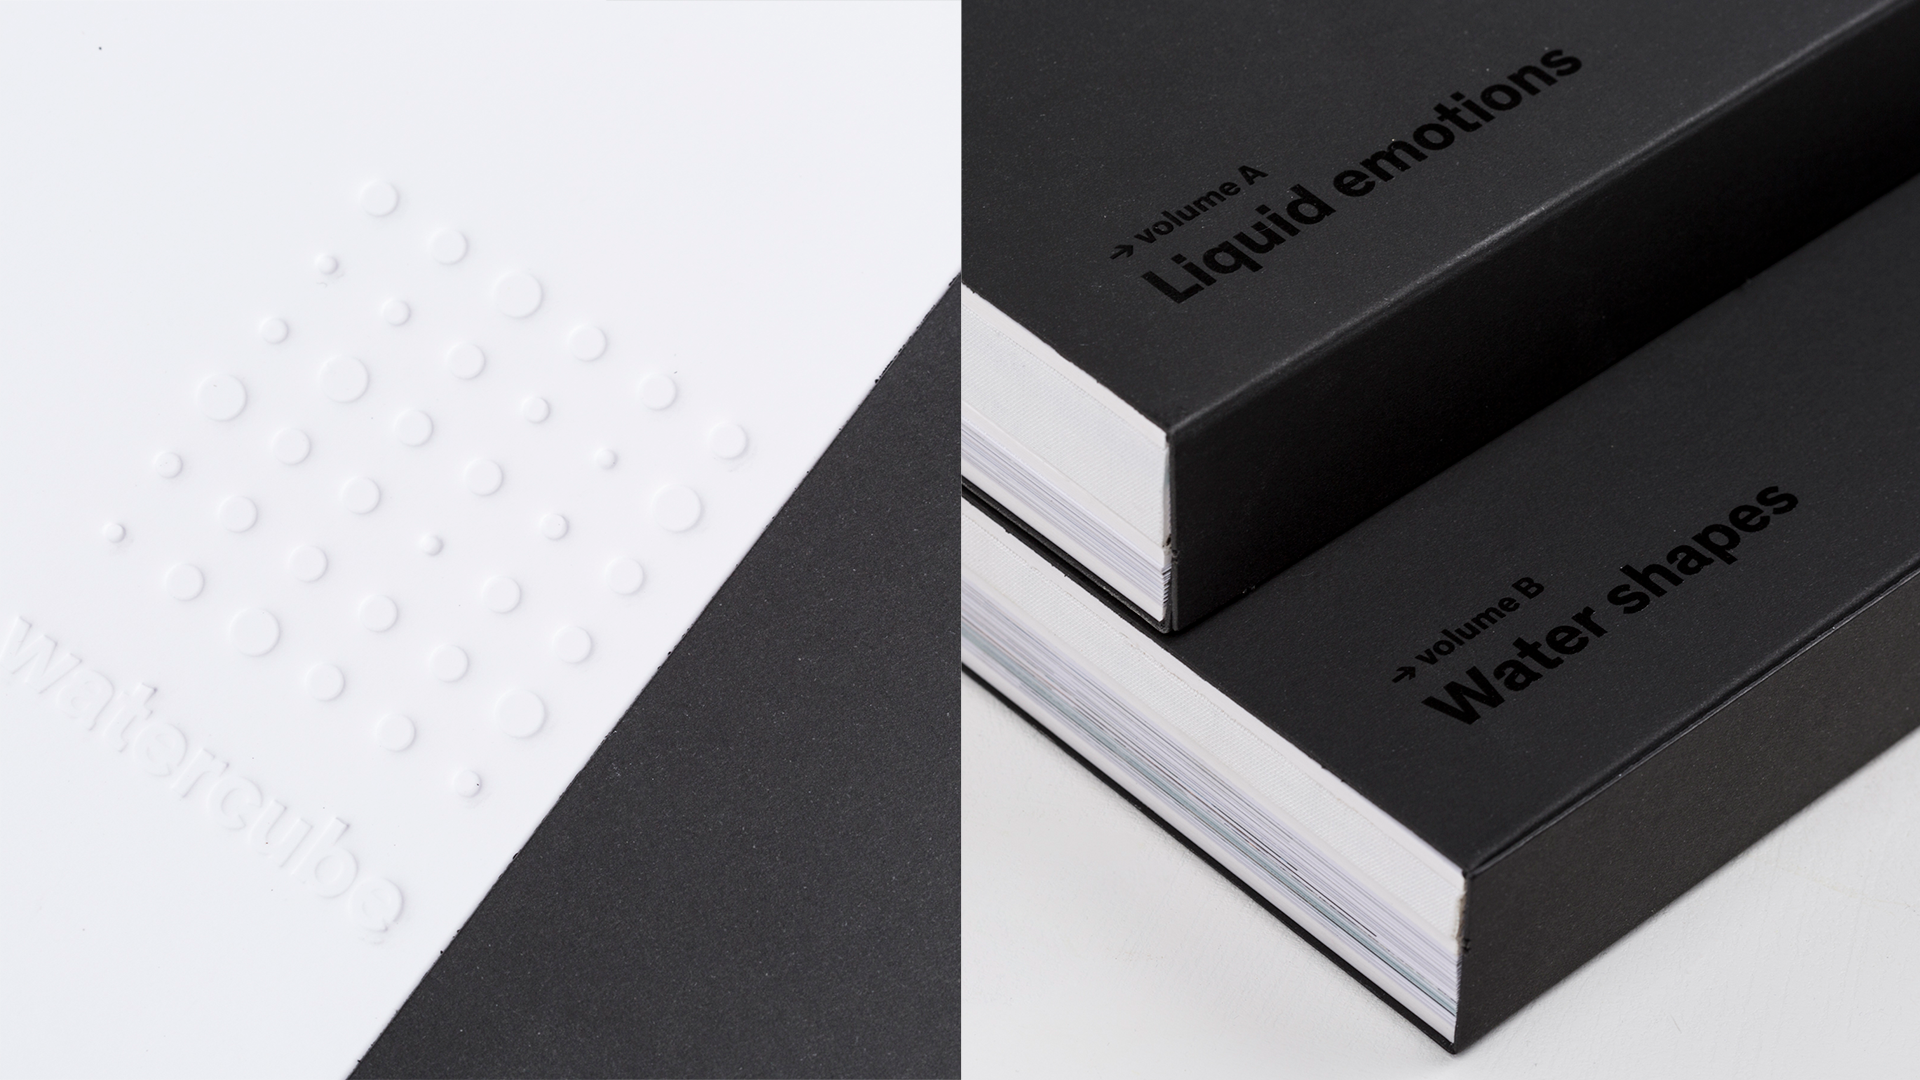 watercube book details